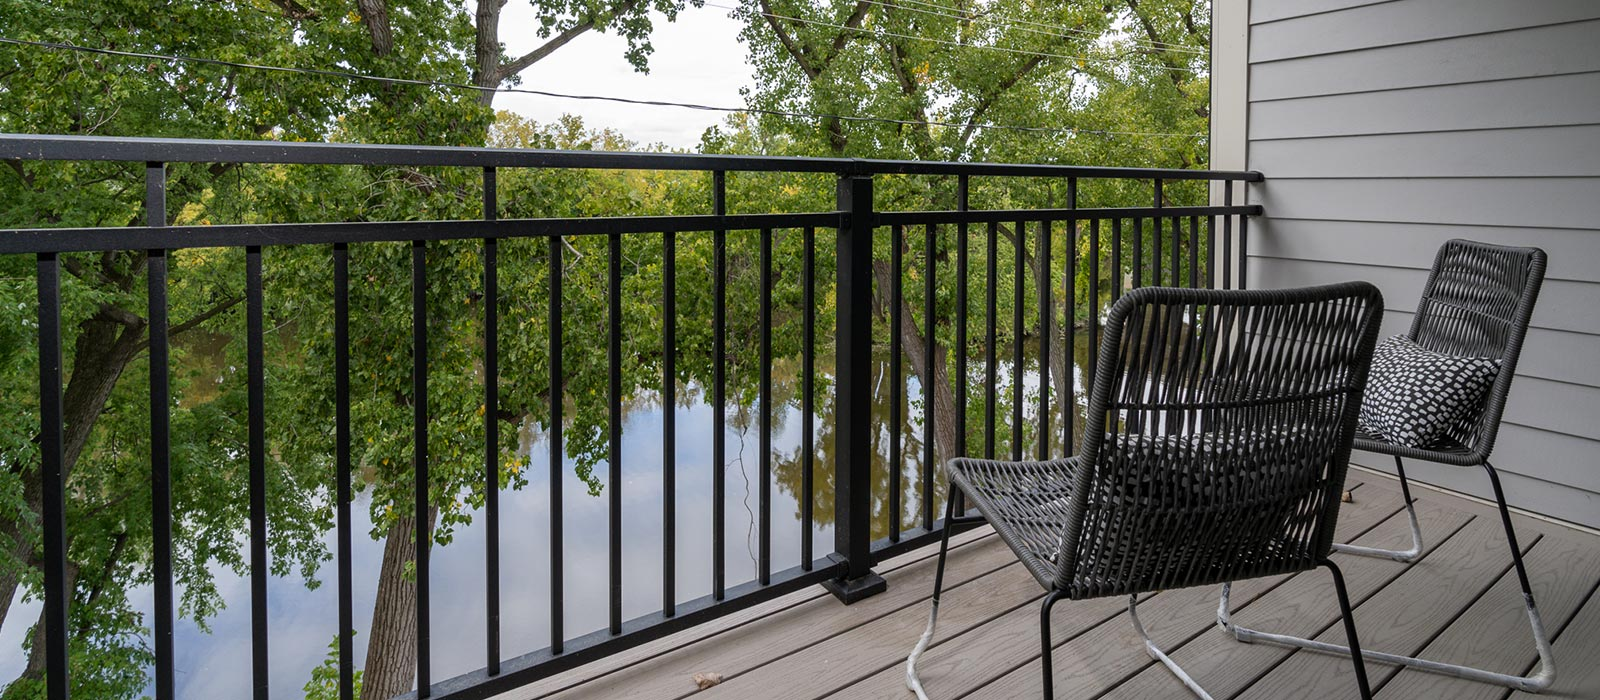 River view from patio with chairs